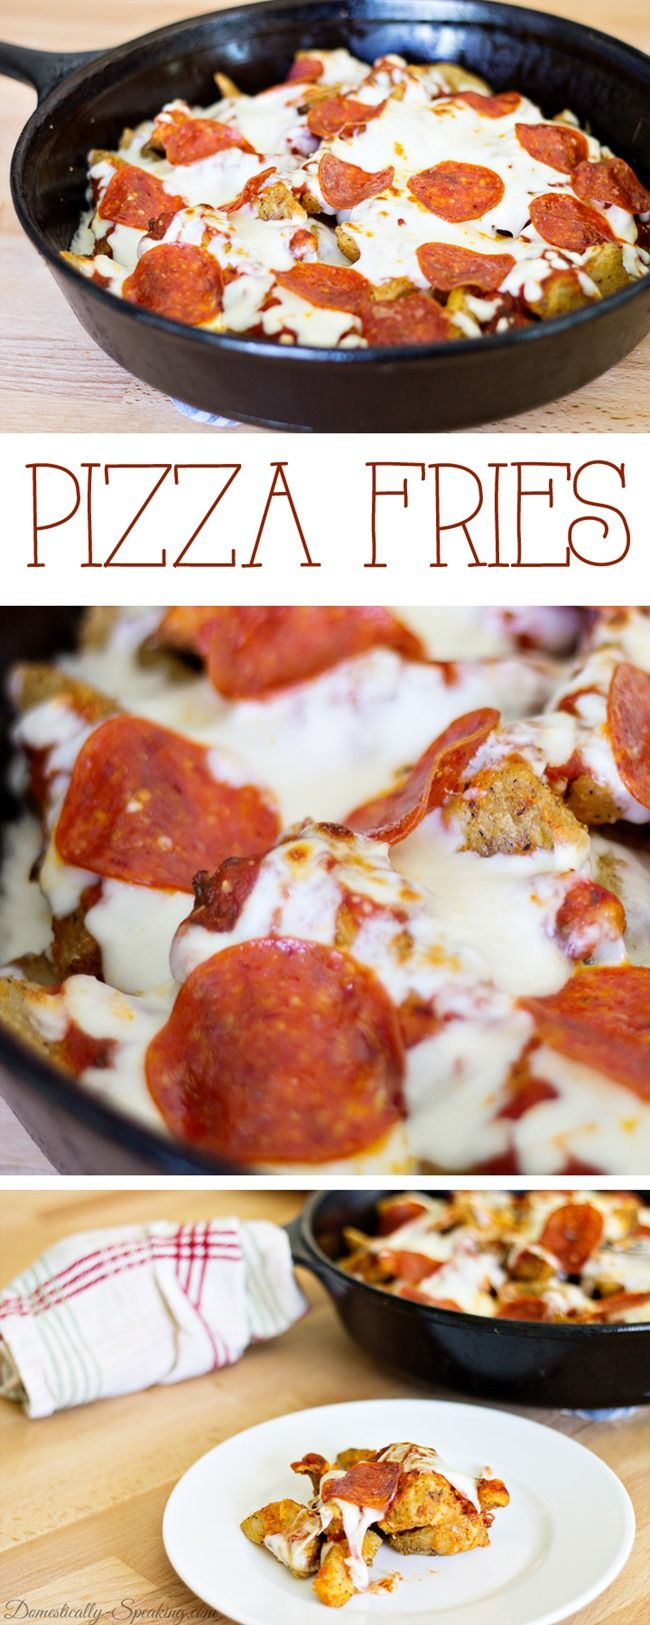 Pizza Fries - perfect for football season!: